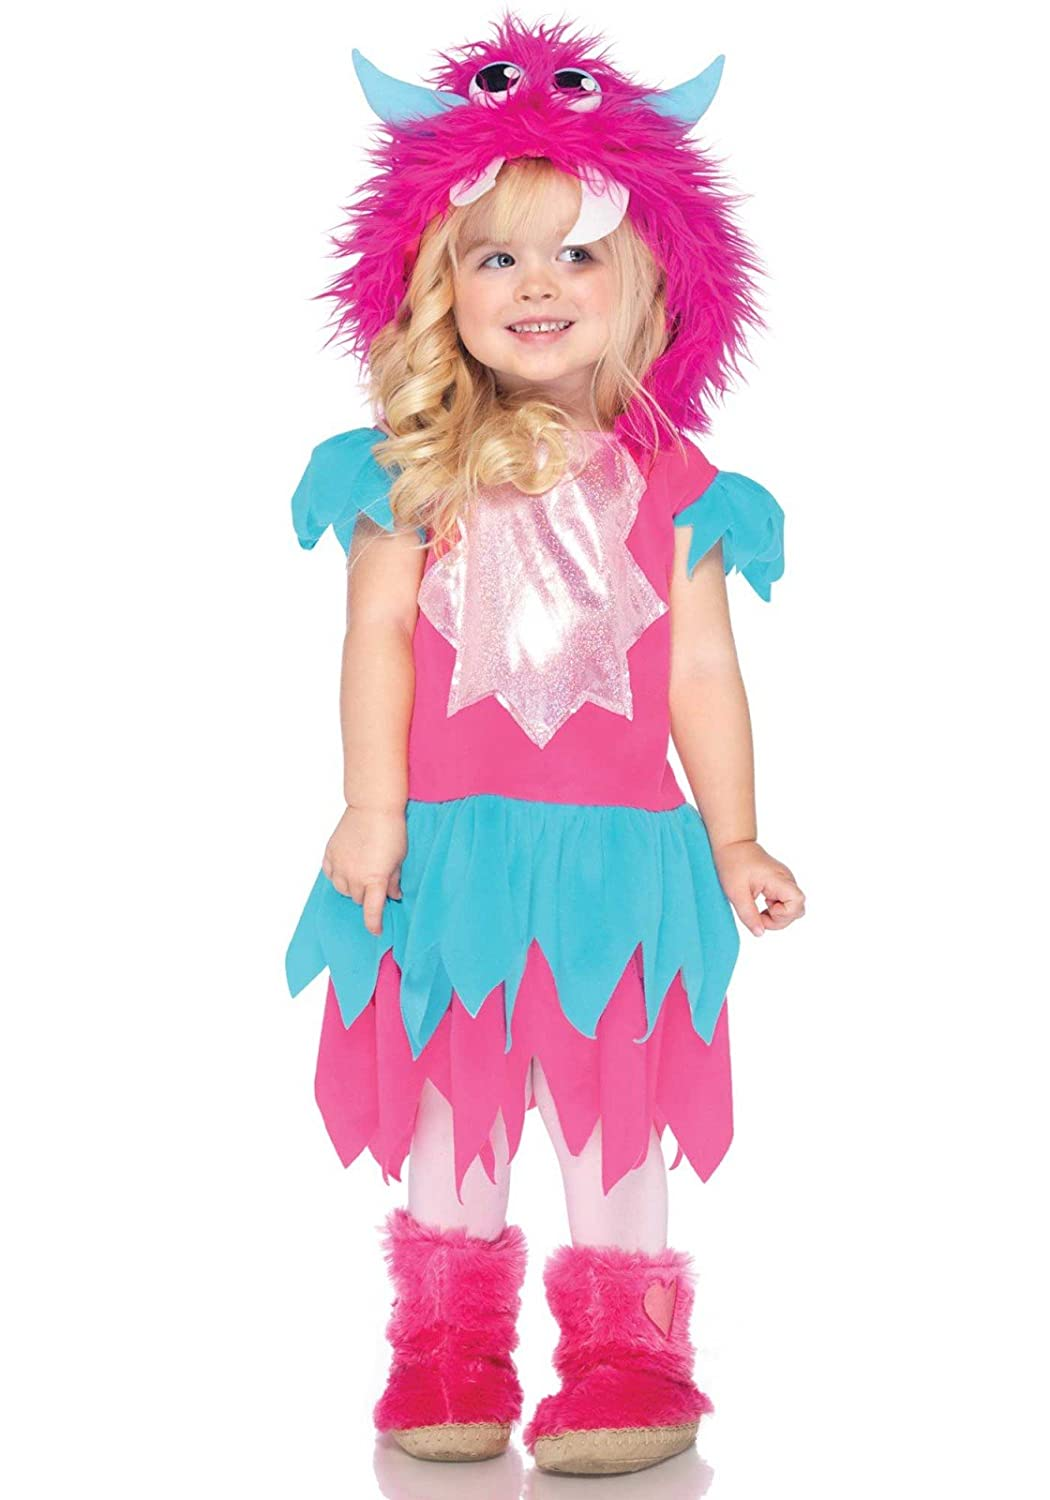 amazoncom sweetheart monster child costume toys games - Baby Monster Halloween Costumes